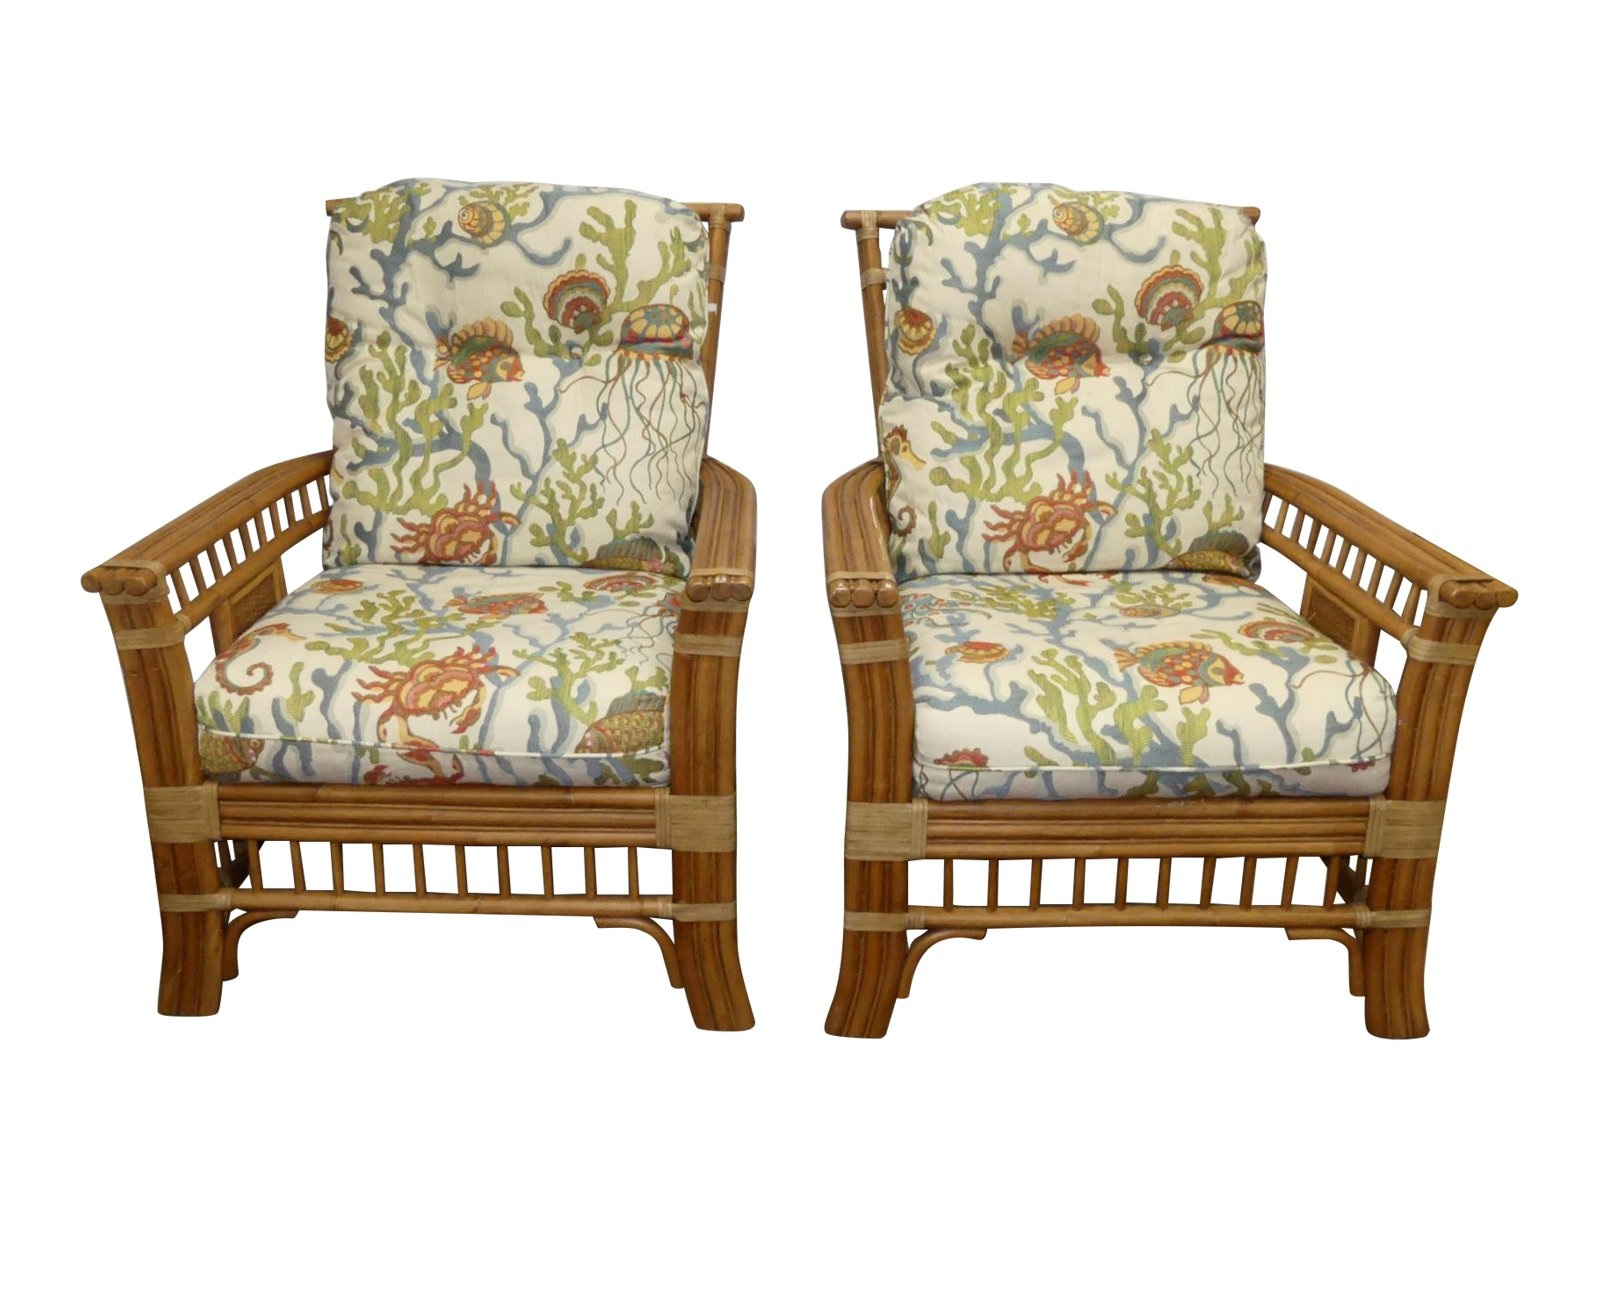 Pair of 2 Coastal Creations Rattan Armchairs with High-End Embroidered Crewel Fabric